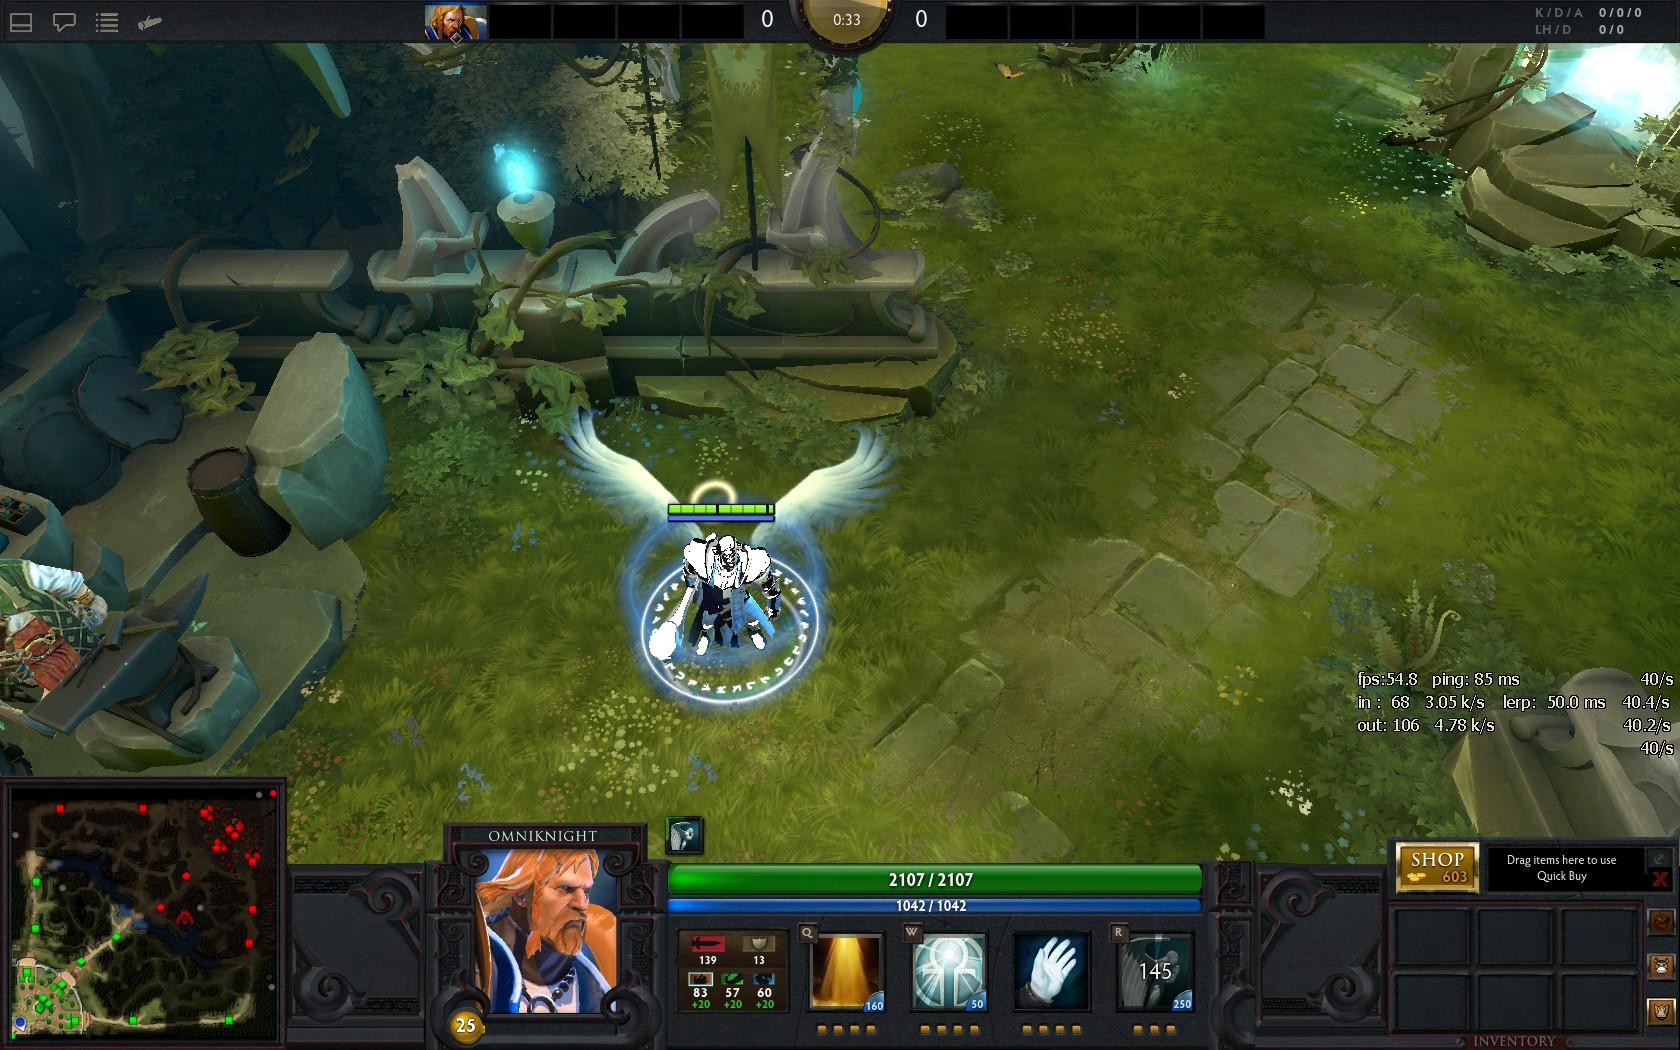 What DotA taught me about effective leadership & teamwork